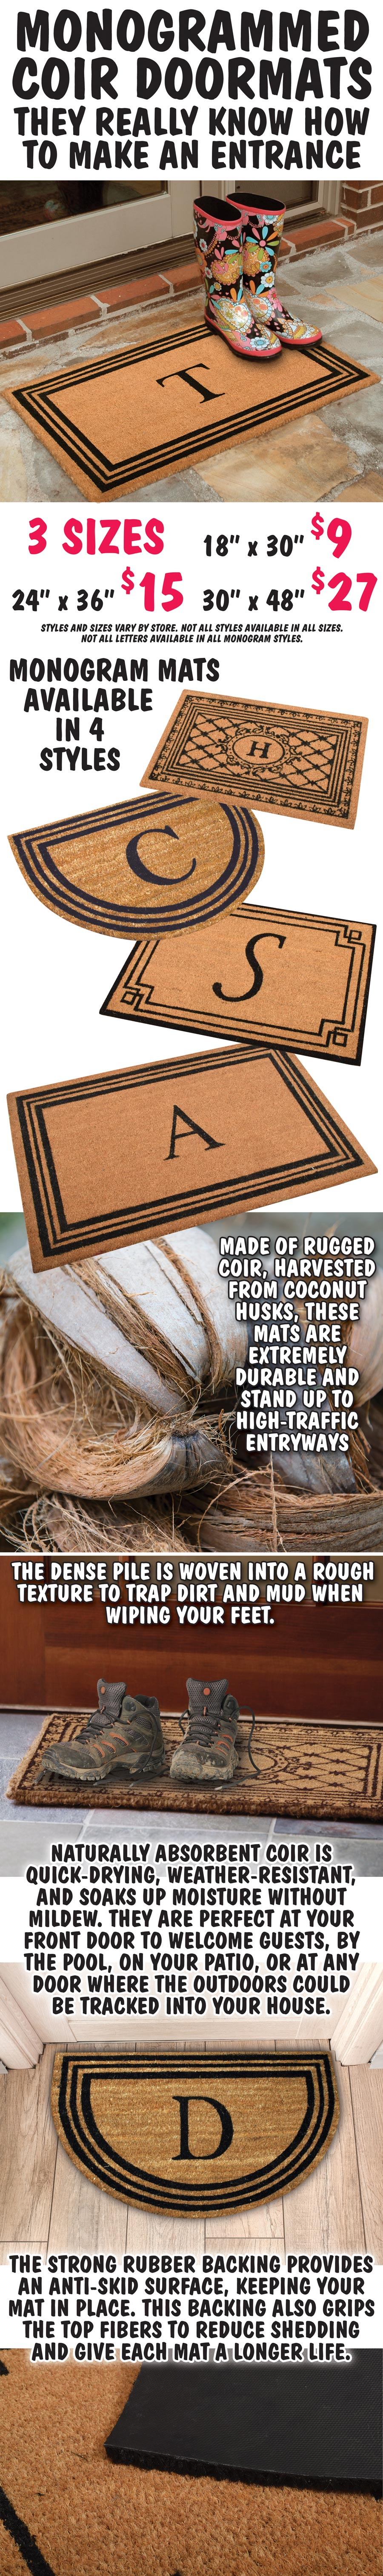 Monogrammed Coir Doormats - 3 Sizes - 18 inches x 30 inches $9, 24 inches x 36 inches $15, 30 inches x 48 inches $27. Available in 4 styles. Styles and sizes vary by store. Not all styles available in all sizes. Not all letters available in all monogram styles.